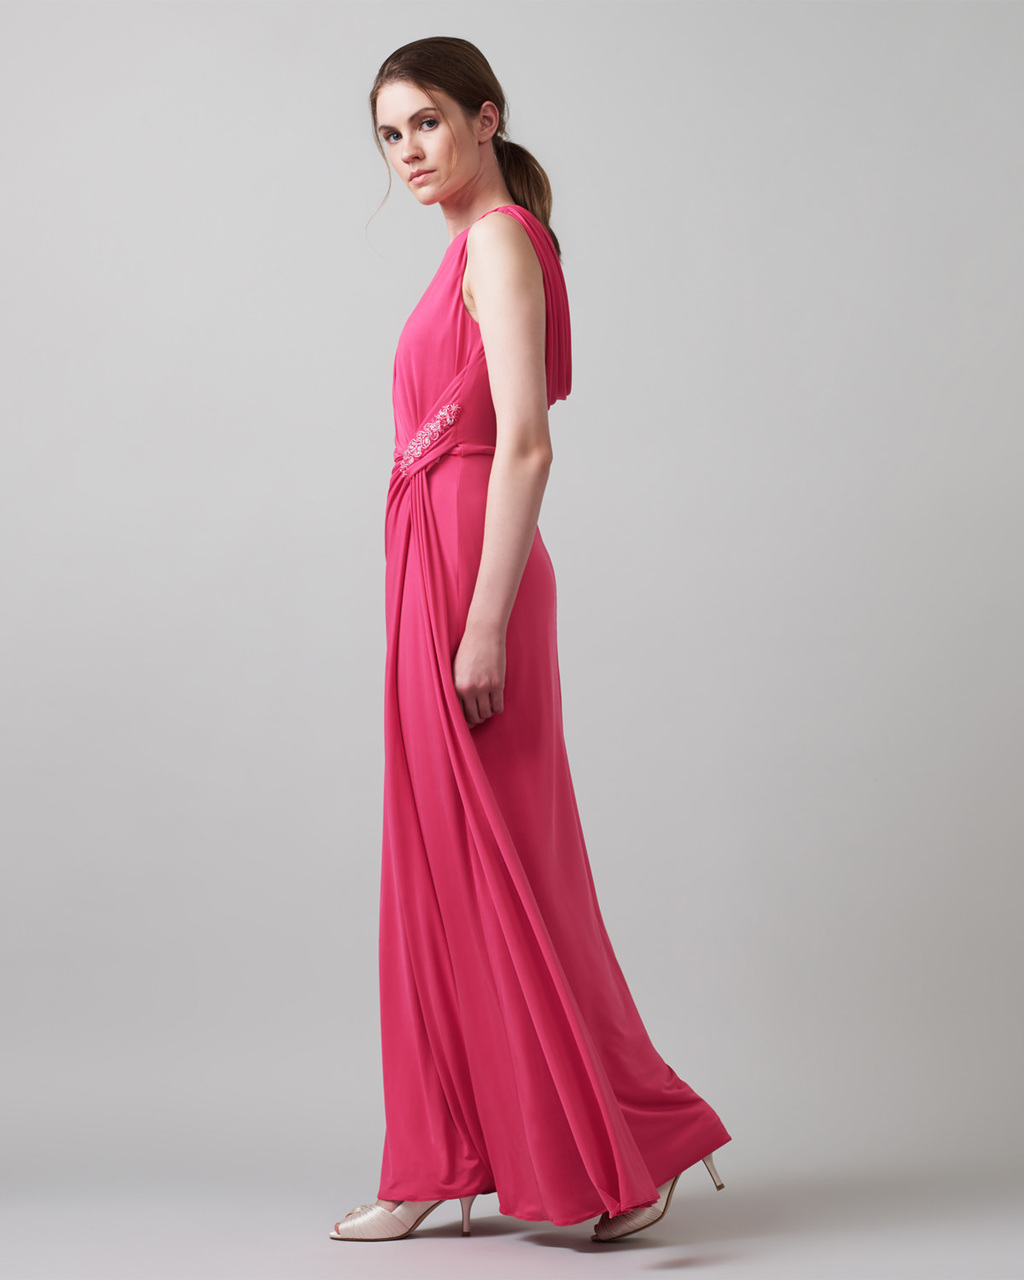 Chelsea Dress - neckline: round neck; pattern: plain; sleeve style: sleeveless; style: maxi dress; predominant colour: hot pink; length: floor length; fit: body skimming; occasions: occasion; sleeve length: sleeveless; pattern type: fabric; texture group: jersey - stretchy/drapey; season: a/w 2015; wardrobe: event